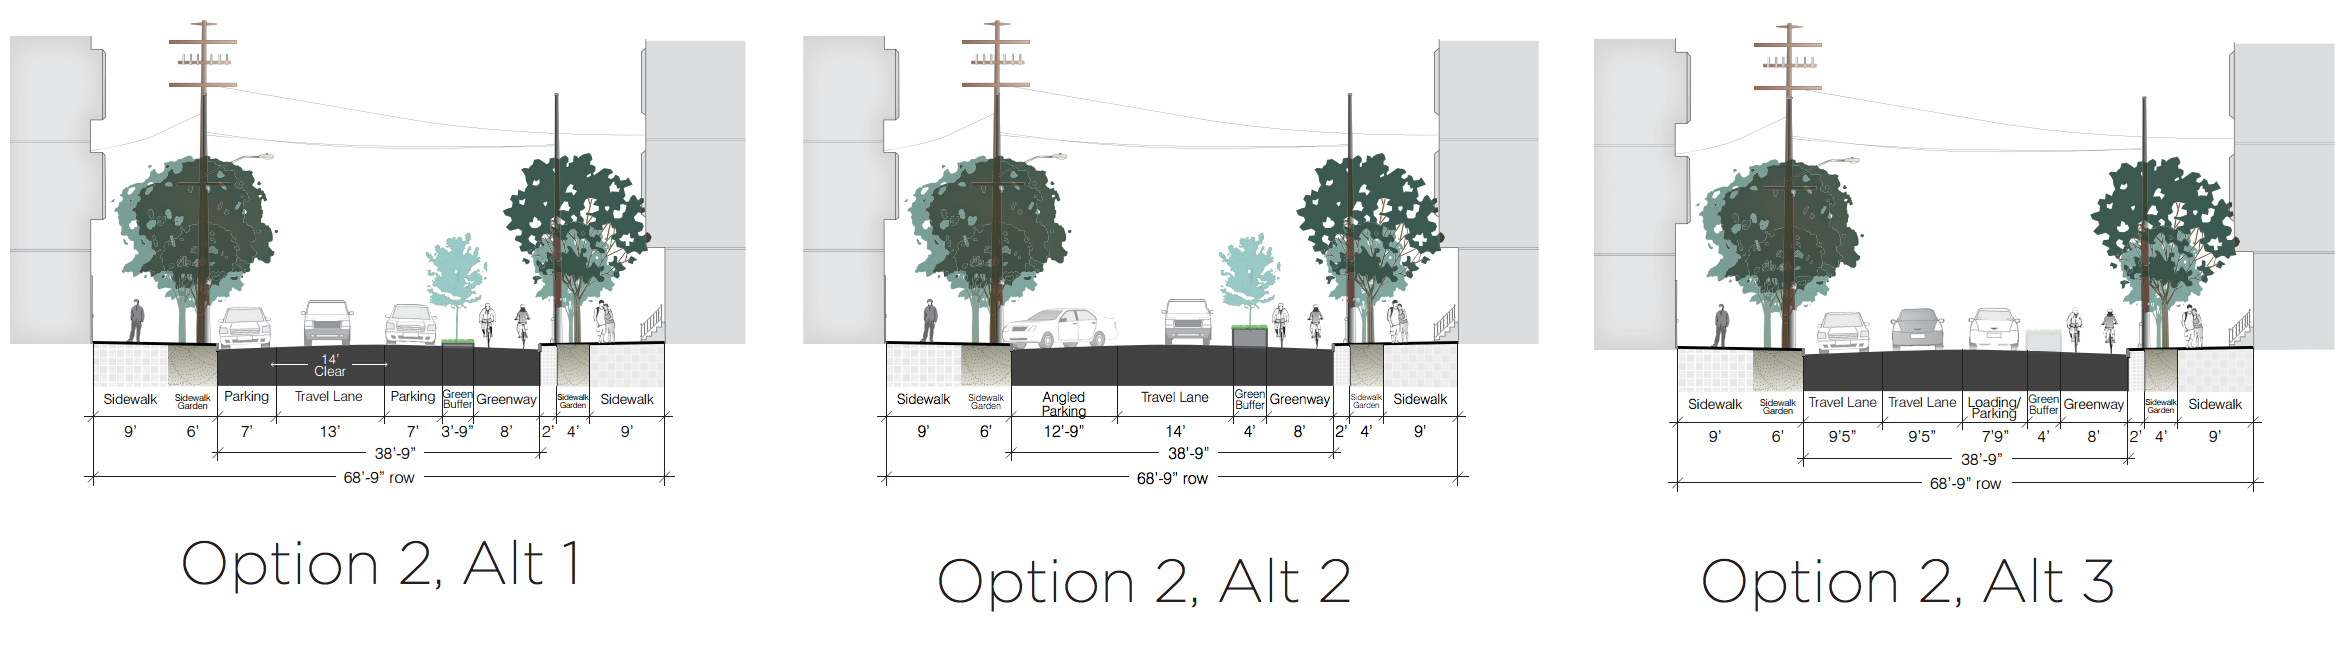 Plan Elevation Section Of Bus Stop : Proposed page street bike connection would link divisadero